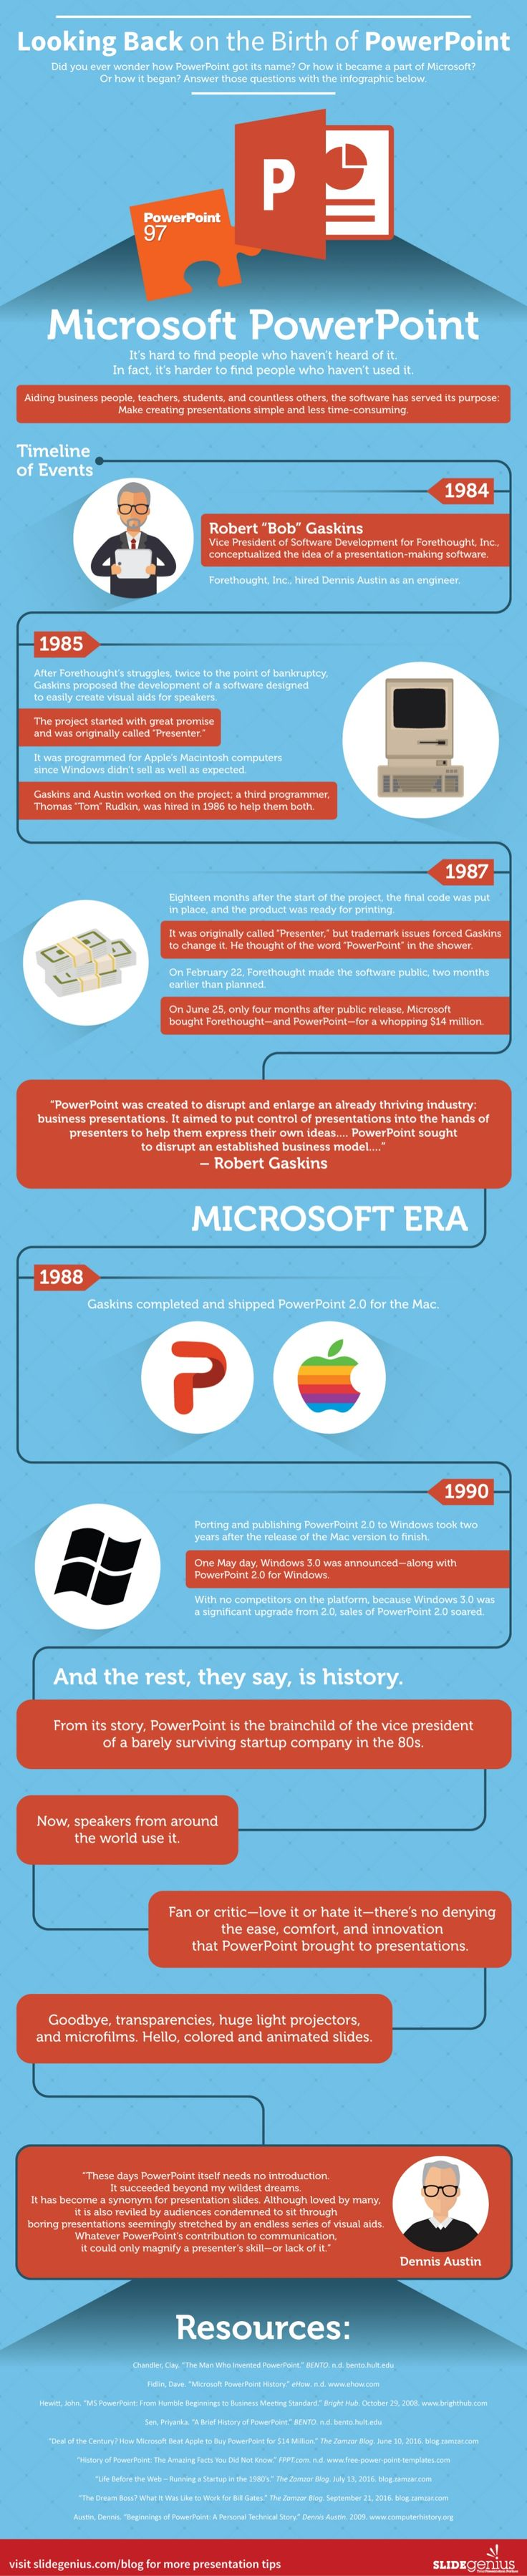 How Microsoft PowerPoint Began Infographic - http://elearninginfographics.com/microsoft-powerpoint-history-infographic/